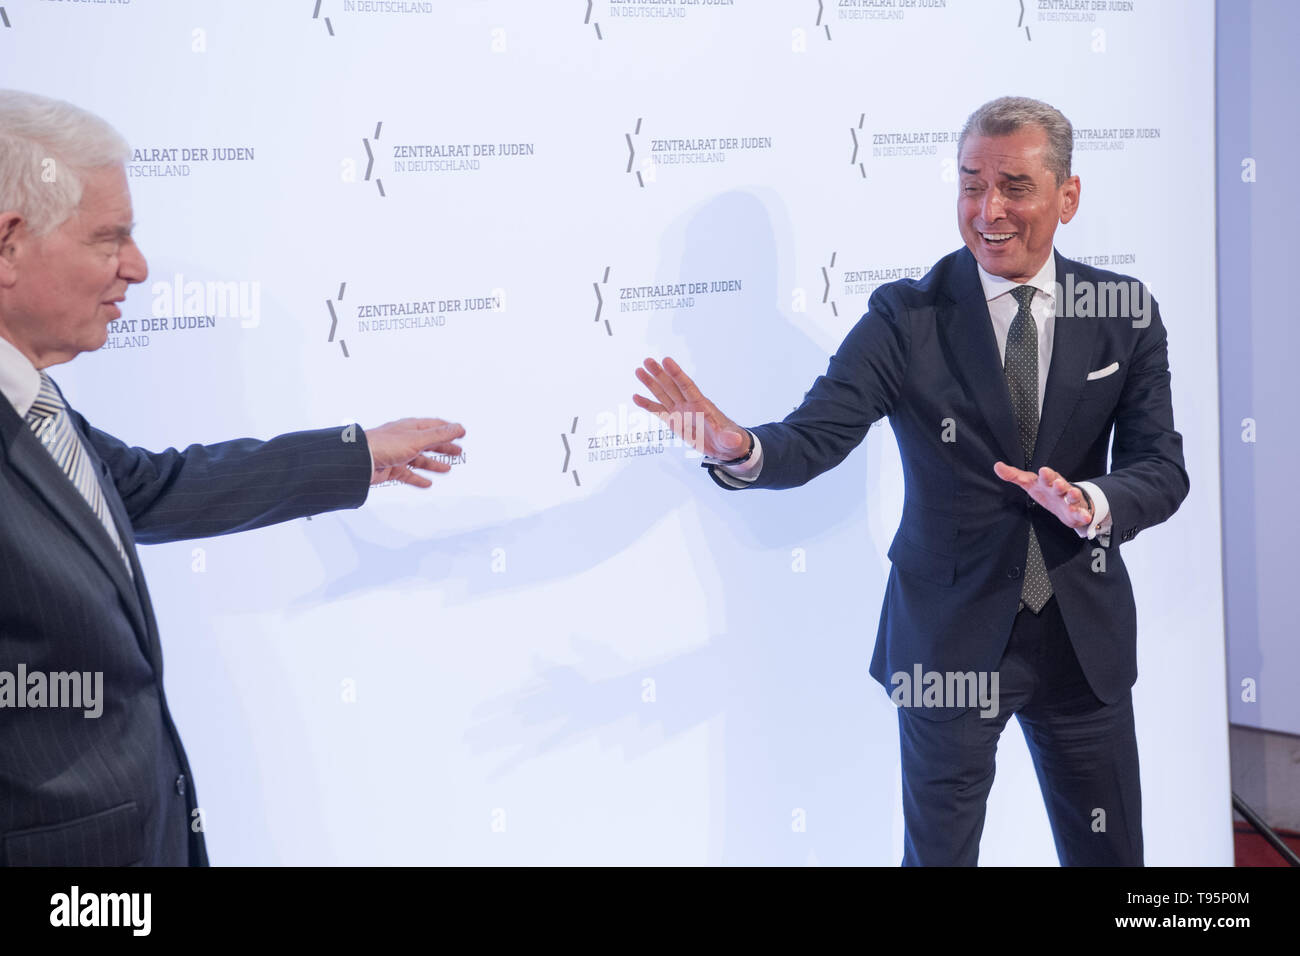 Berlin, Germany. 16th May, 2019. Josef Schuster (l), President of the Central Council of Jews in Germany, and Michel Friedman (CDU), publicist and presenter, come to the Leo Baeck Prize 2019. Credit: Jörg Carstensen/dpa/Alamy Live News - Stock Image